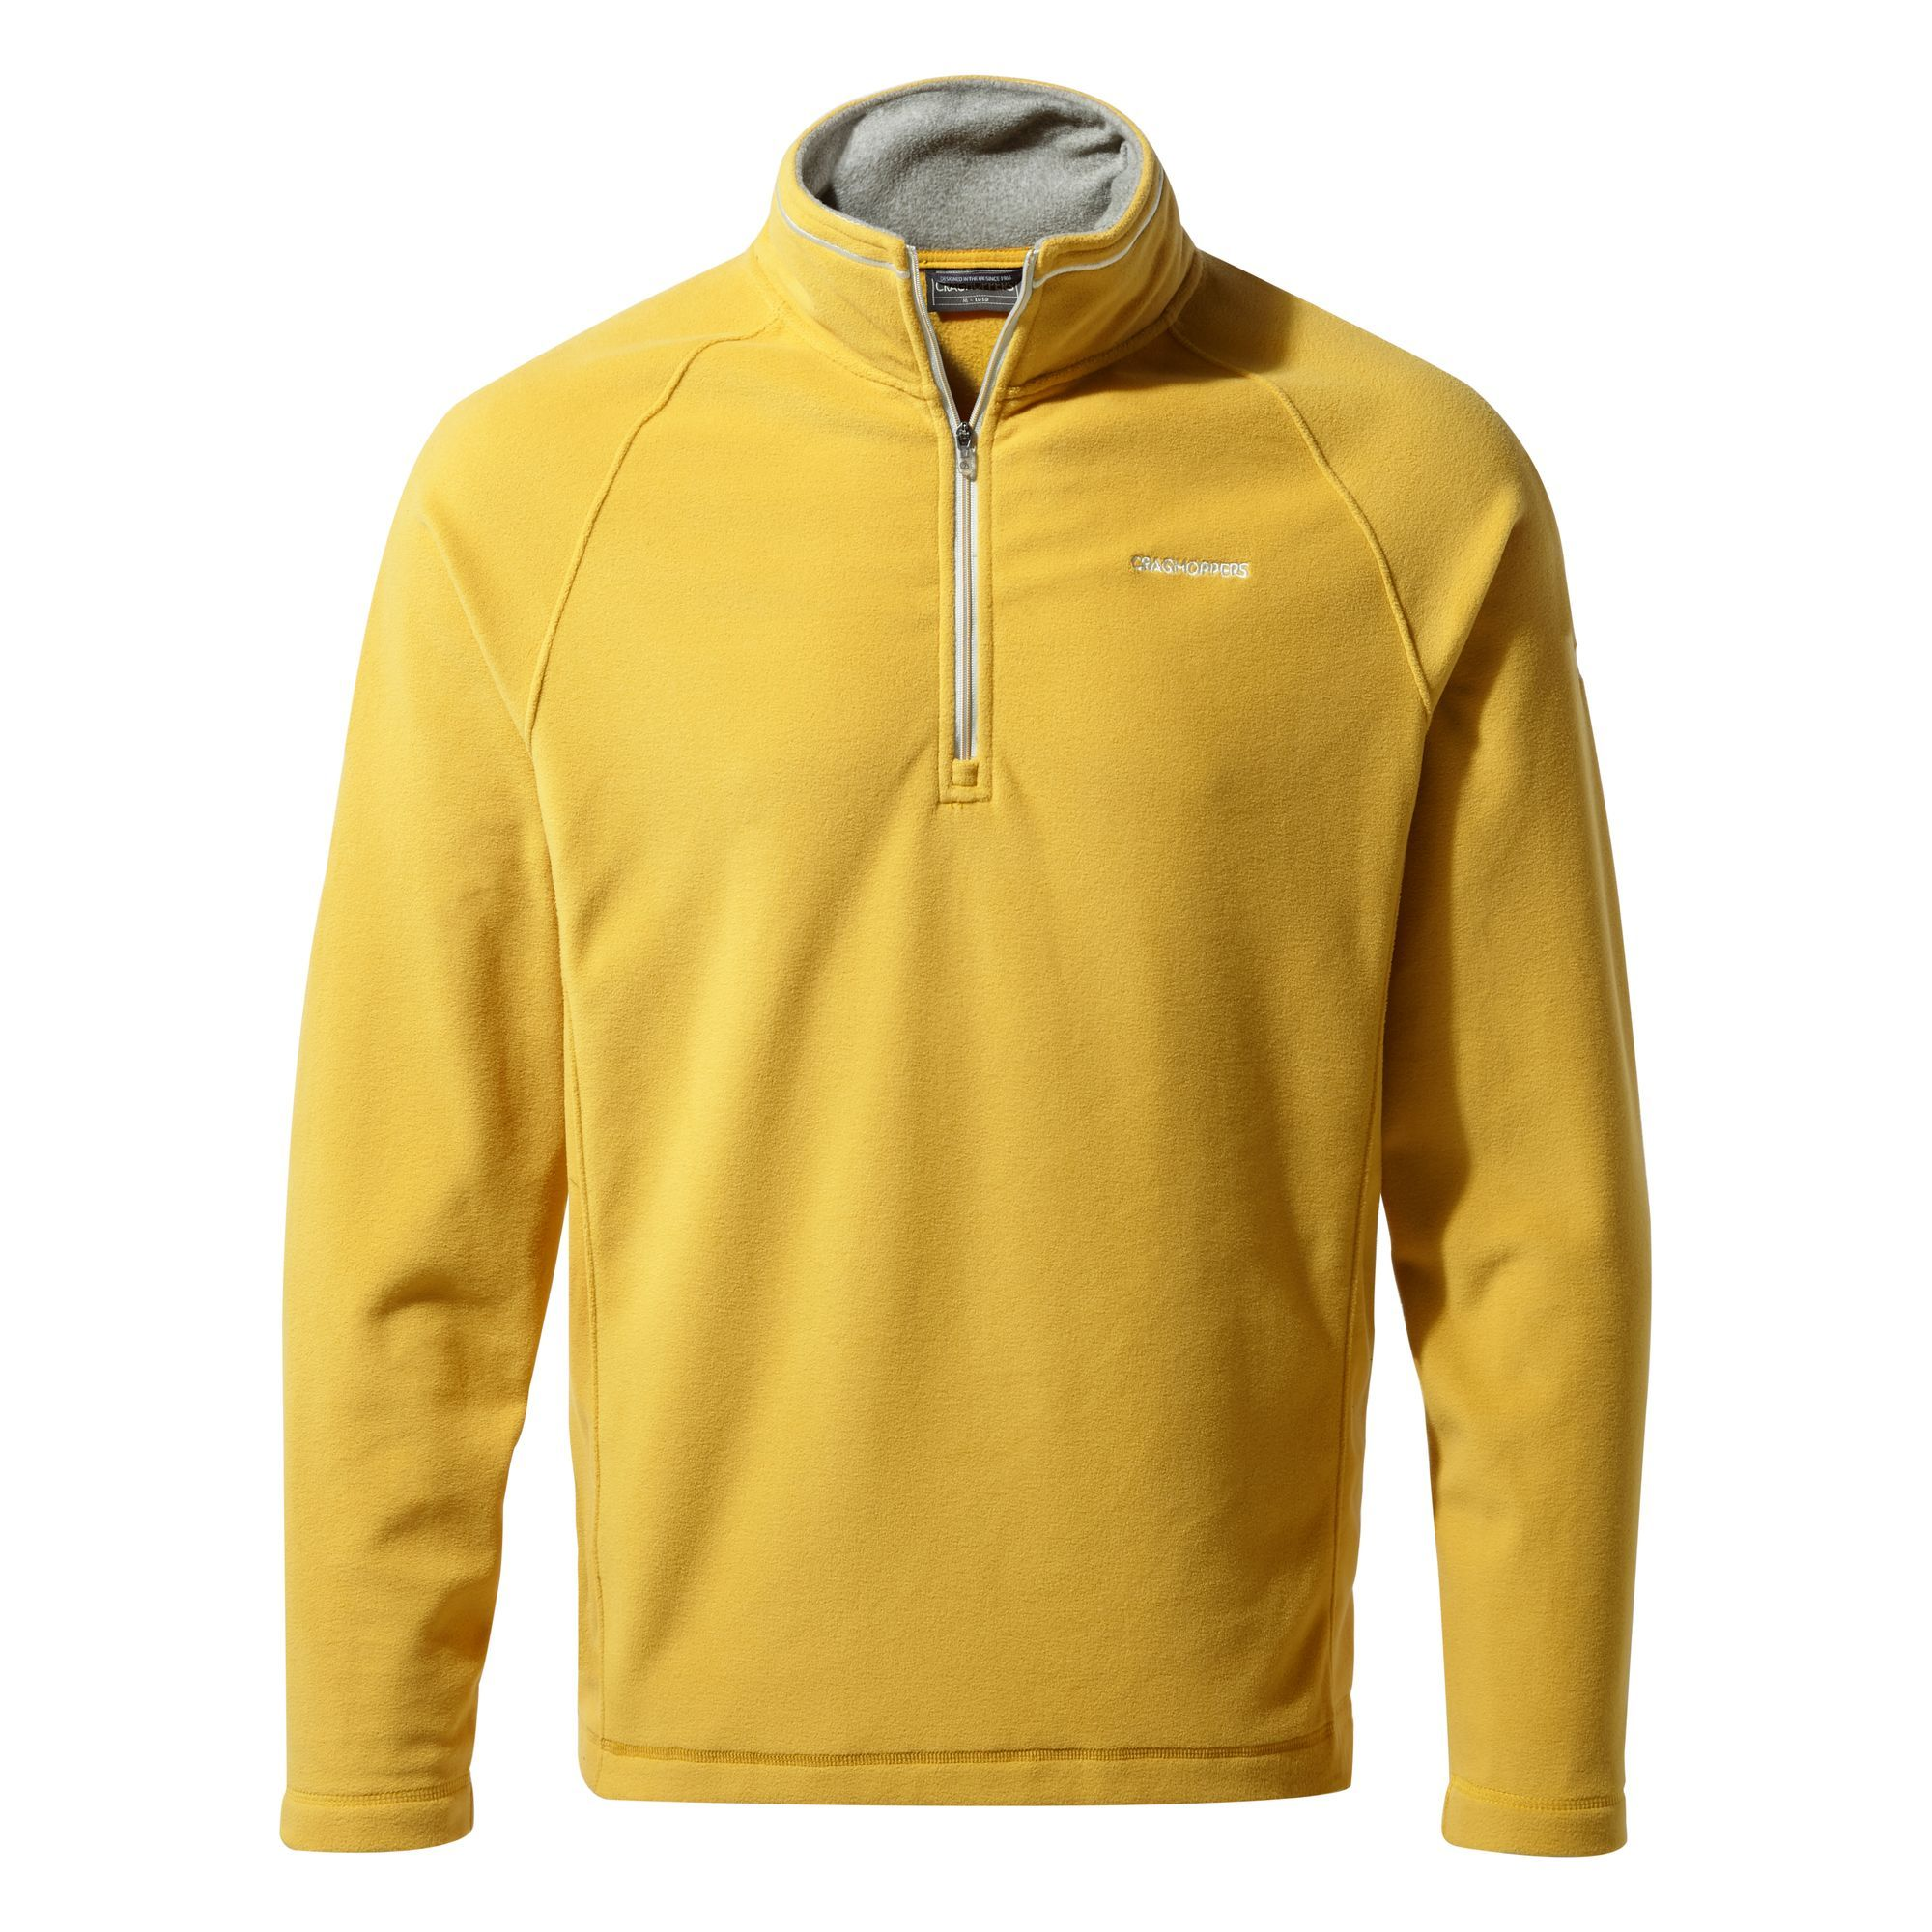 Craghoppers Corey Half Zip Fleece for Men in Soft Gold